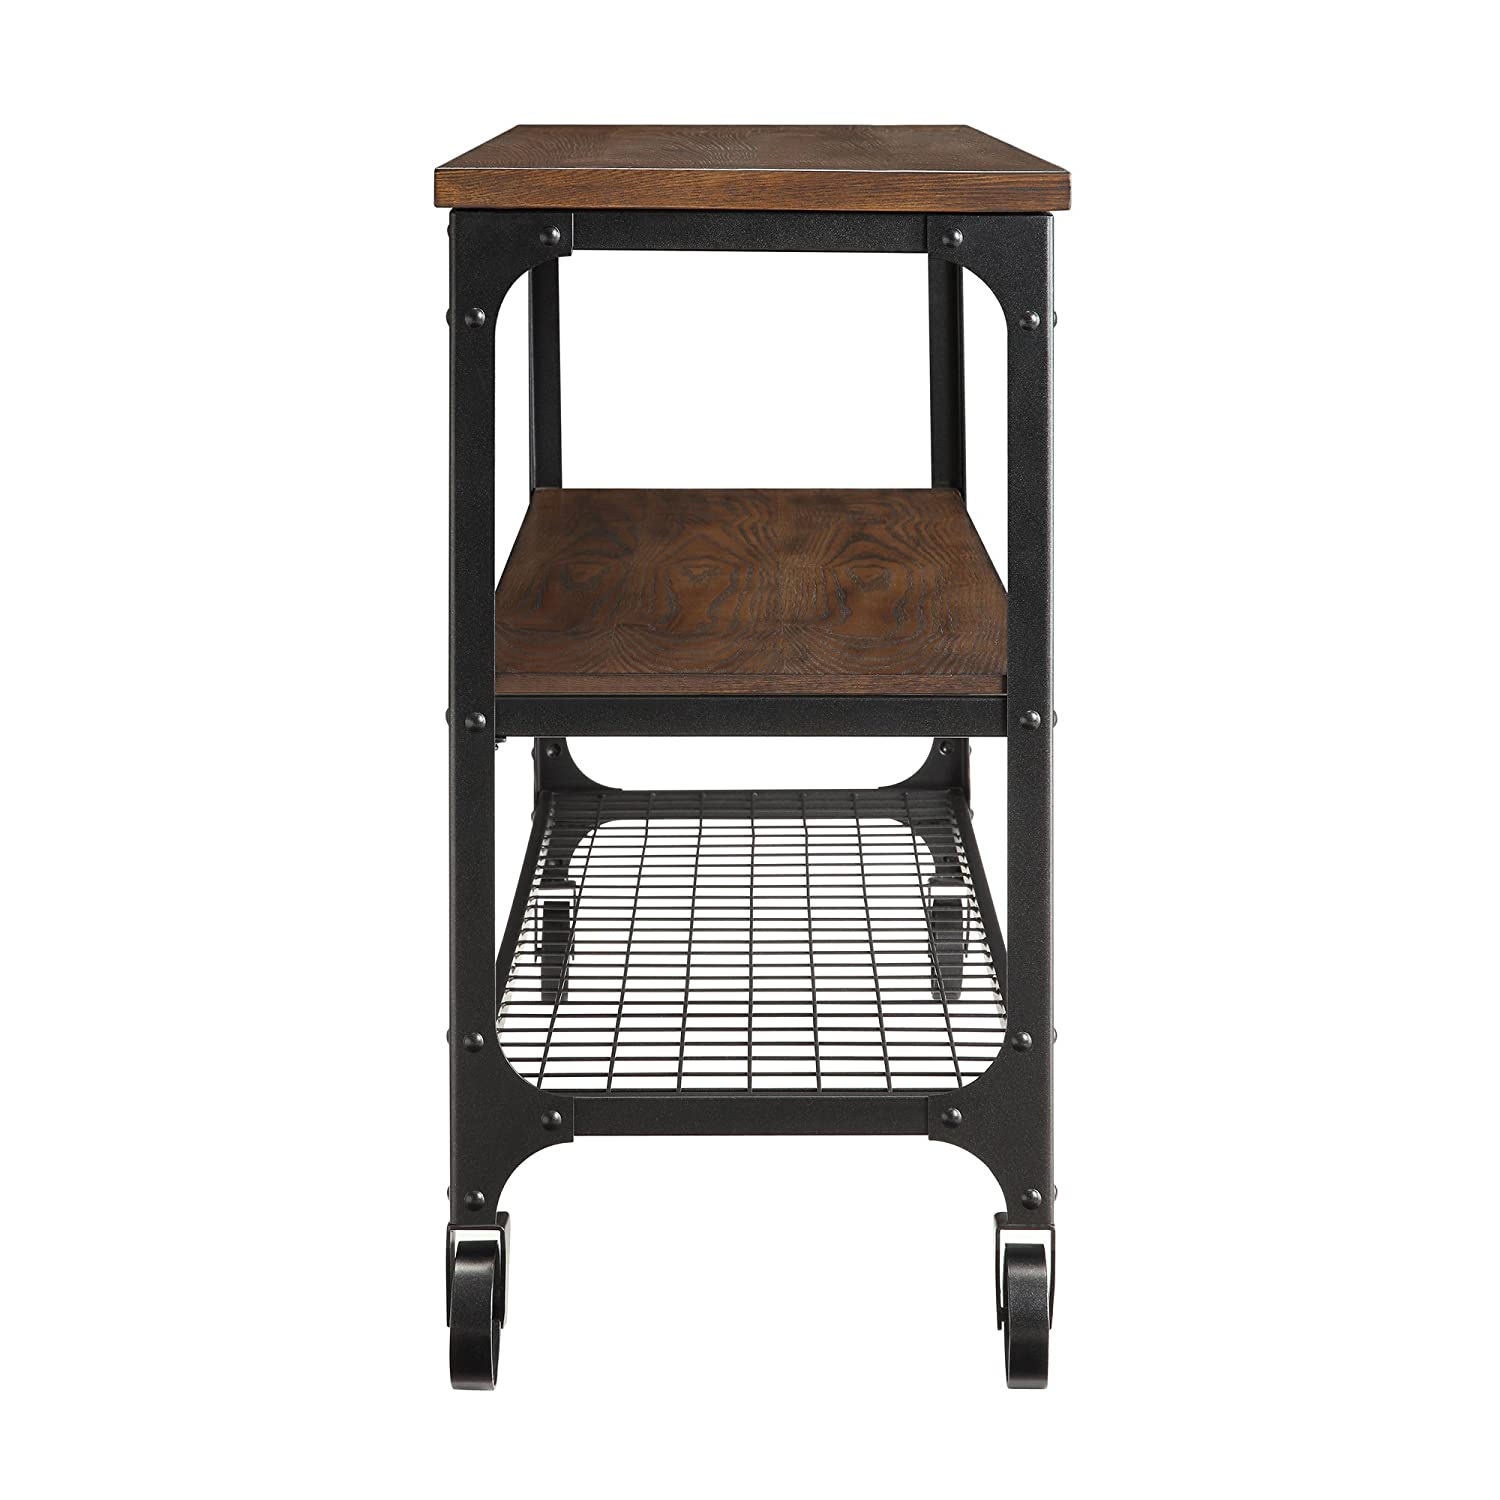 Amazon.com: ModHaus Living Modern Industrial Rustic Riveted Black Metal U0026  Wood TV Stand With Decorative Wheels   Includes (TM) Pen (48): Kitchen U0026  Dining